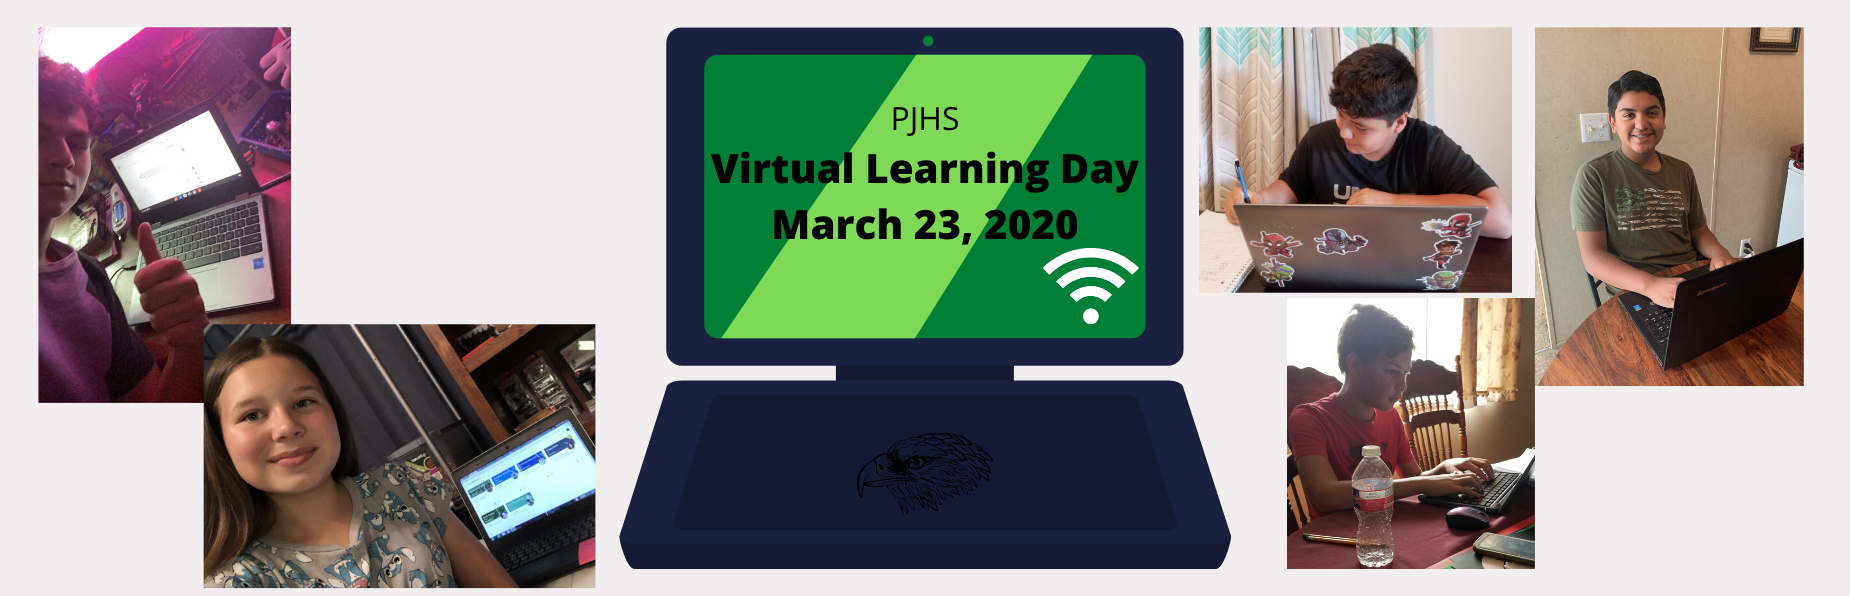 virtual learning day